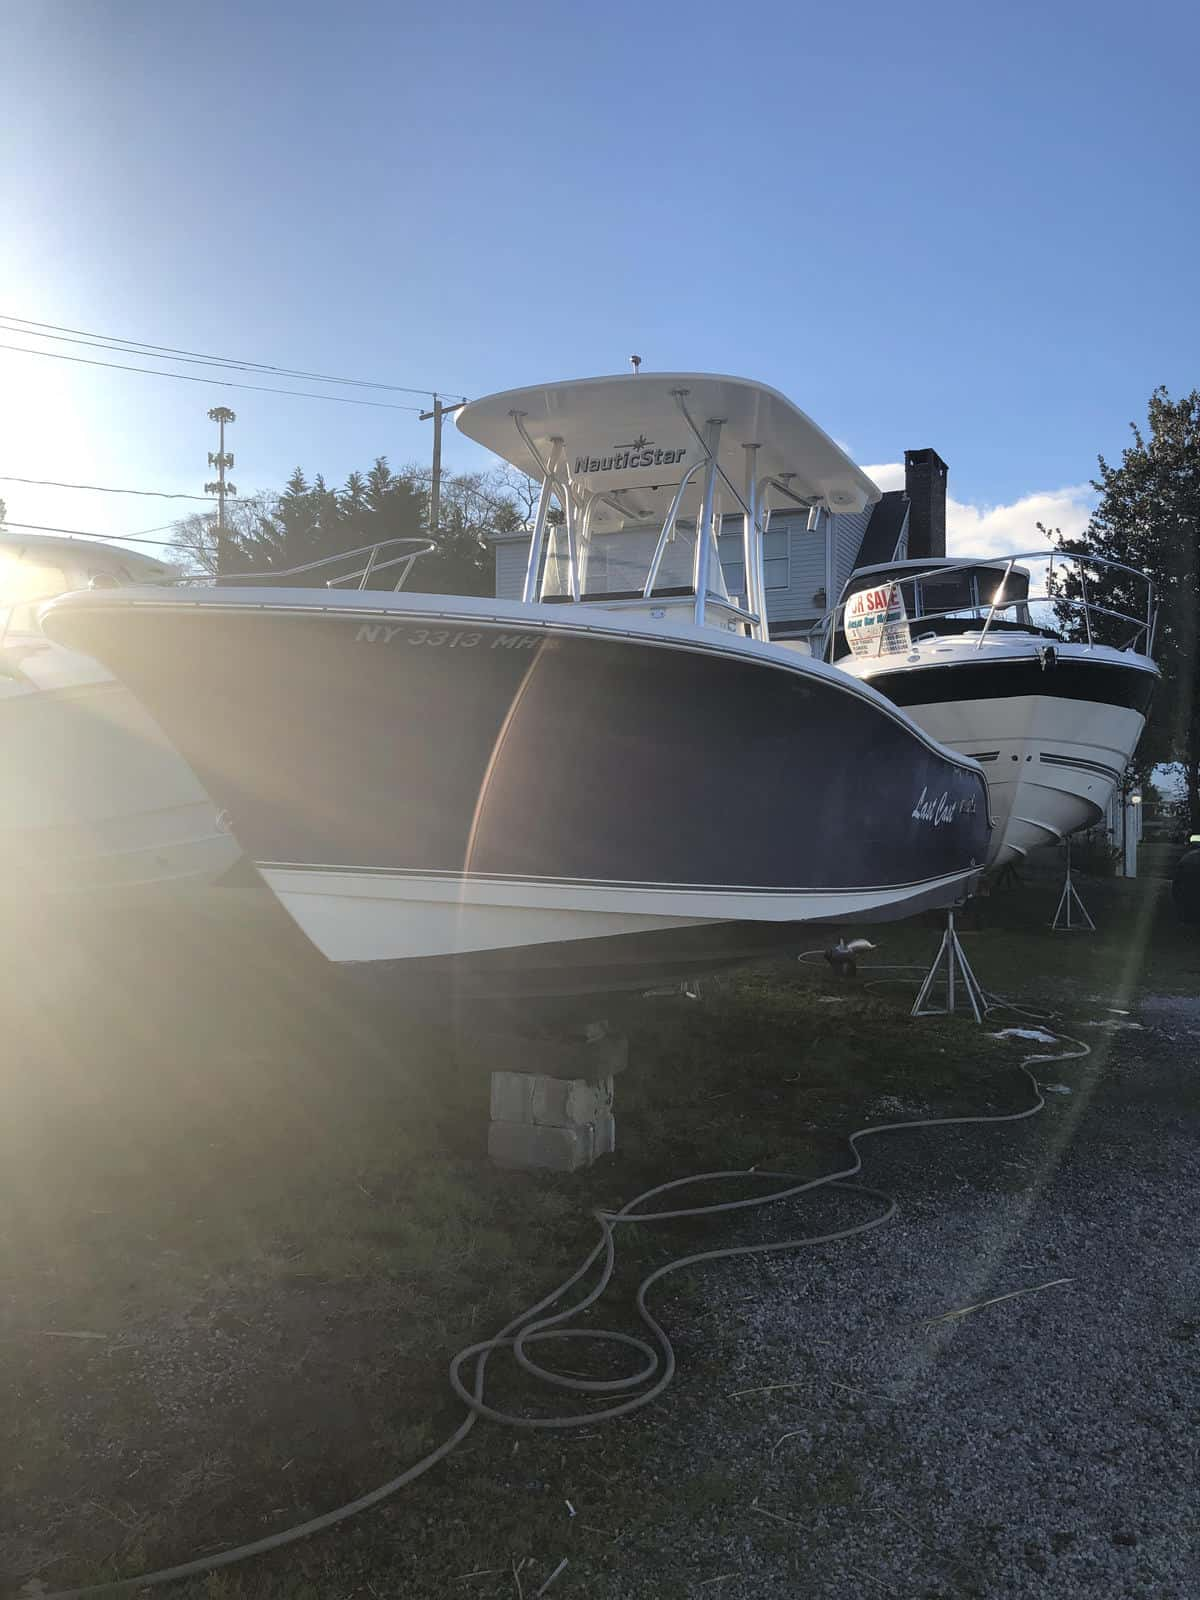 USED 2012 Nautic Star 2500XS - Great Bay Marine